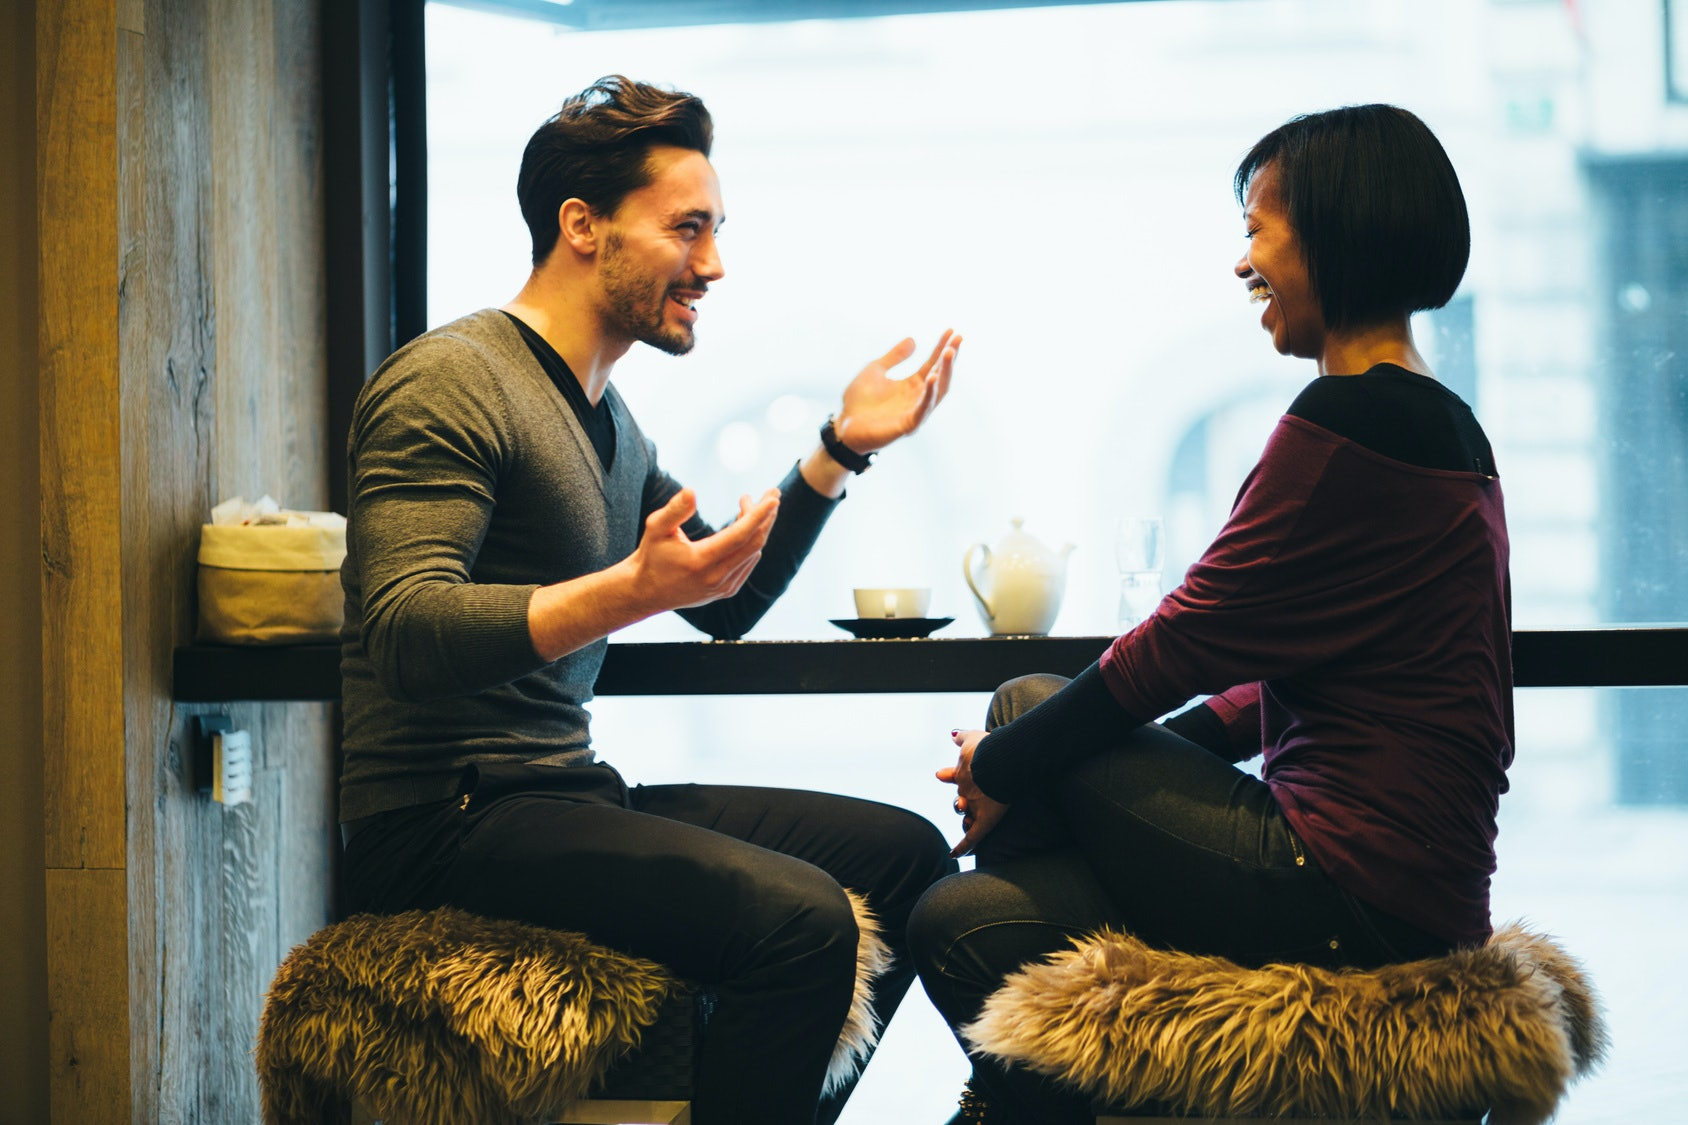 Getting overcome dating anxiety